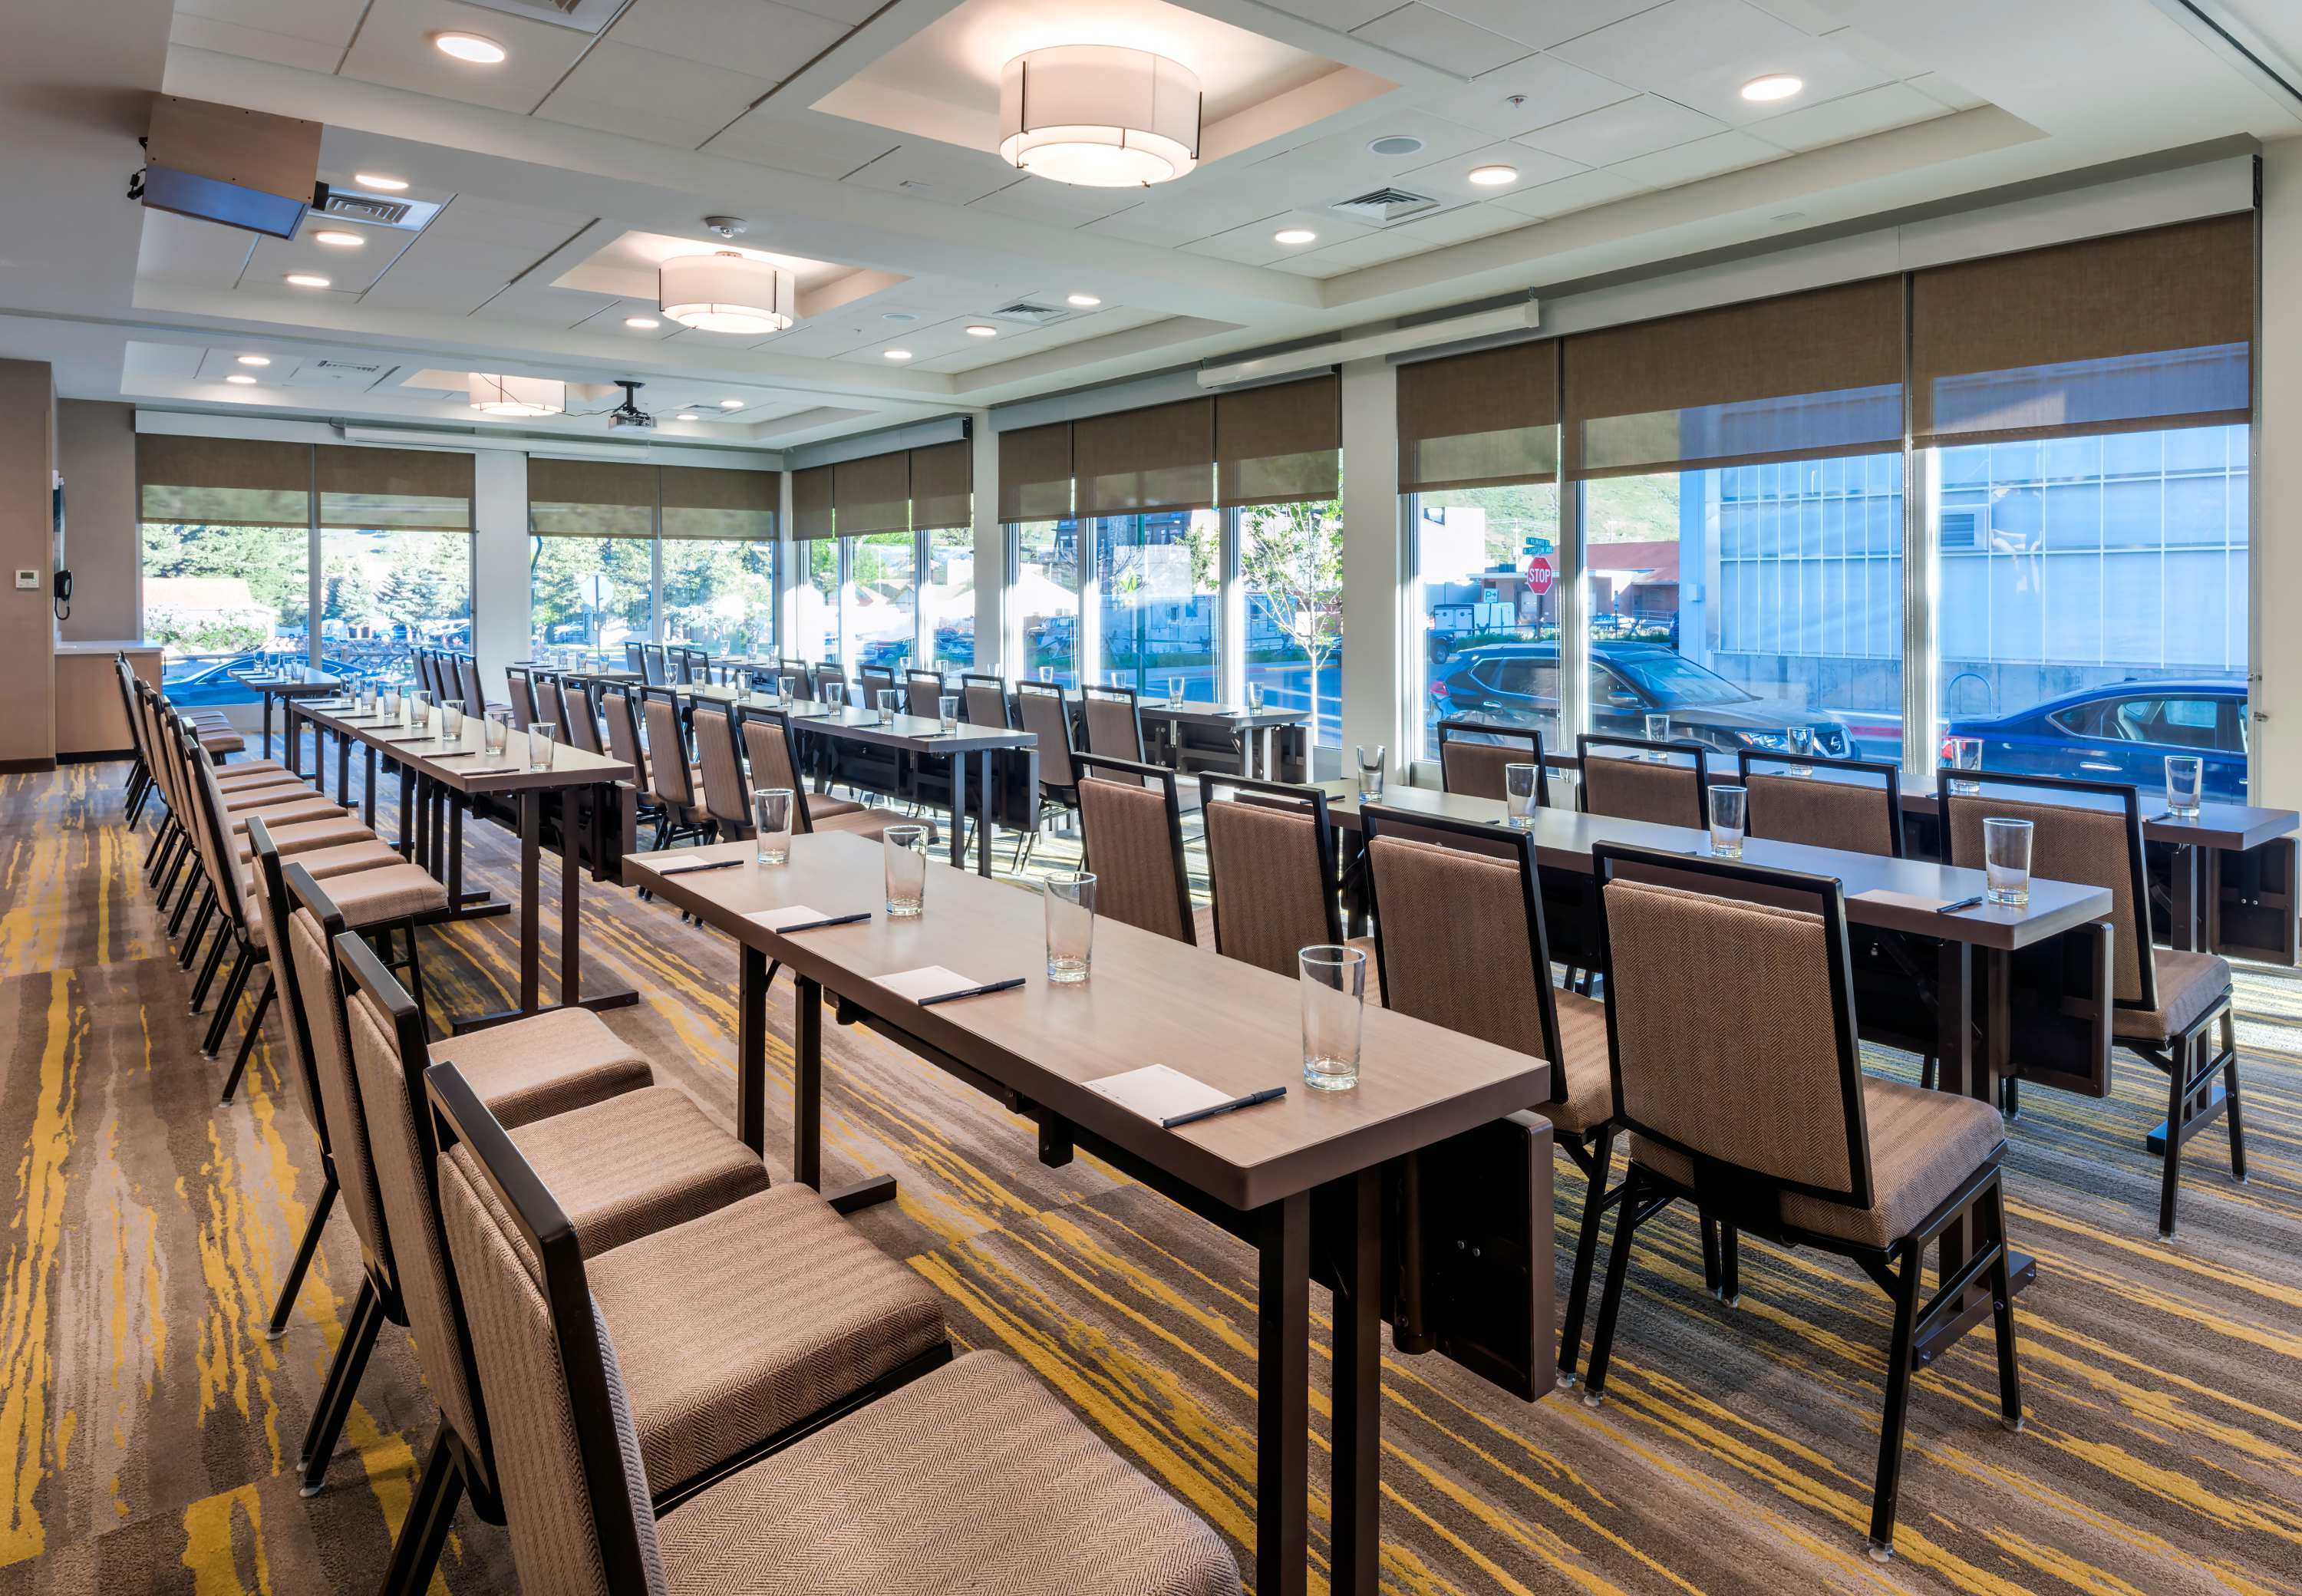 SpringHill Suites by Marriott Jackson Hole image 14